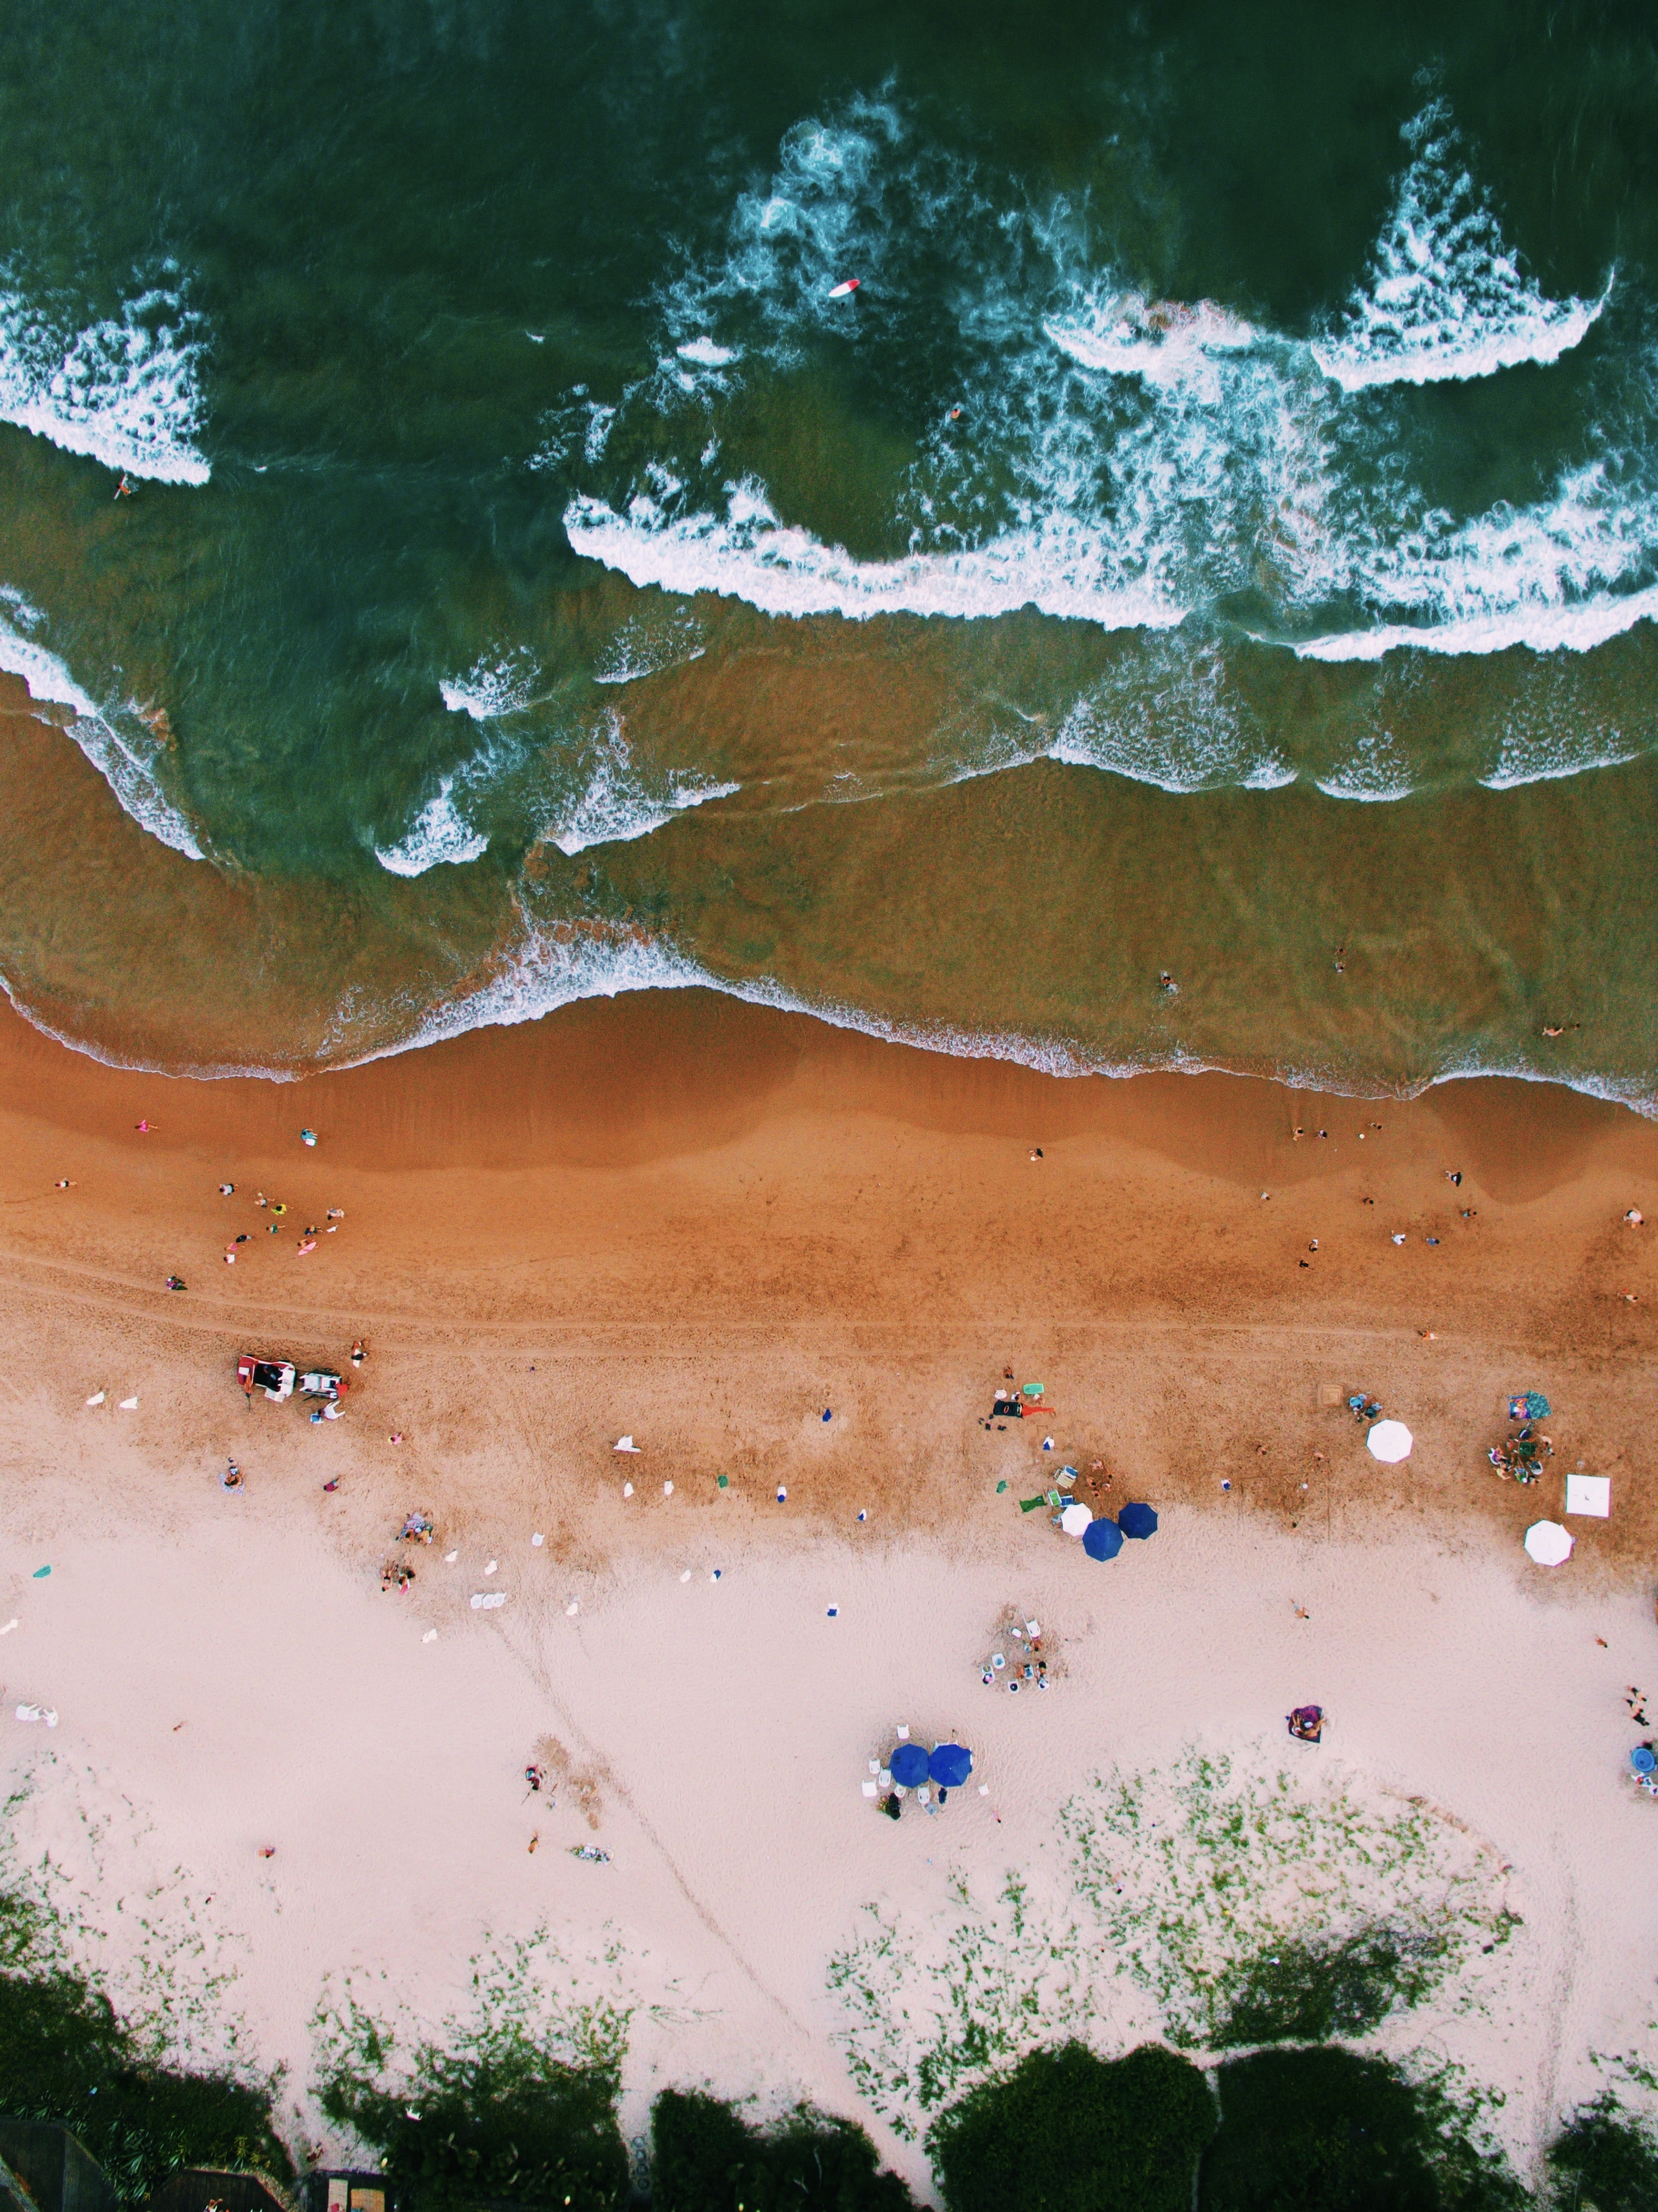 An aerial shot of waves breaking on a wet golden beach with tourists, their umbrellas and deck chairs